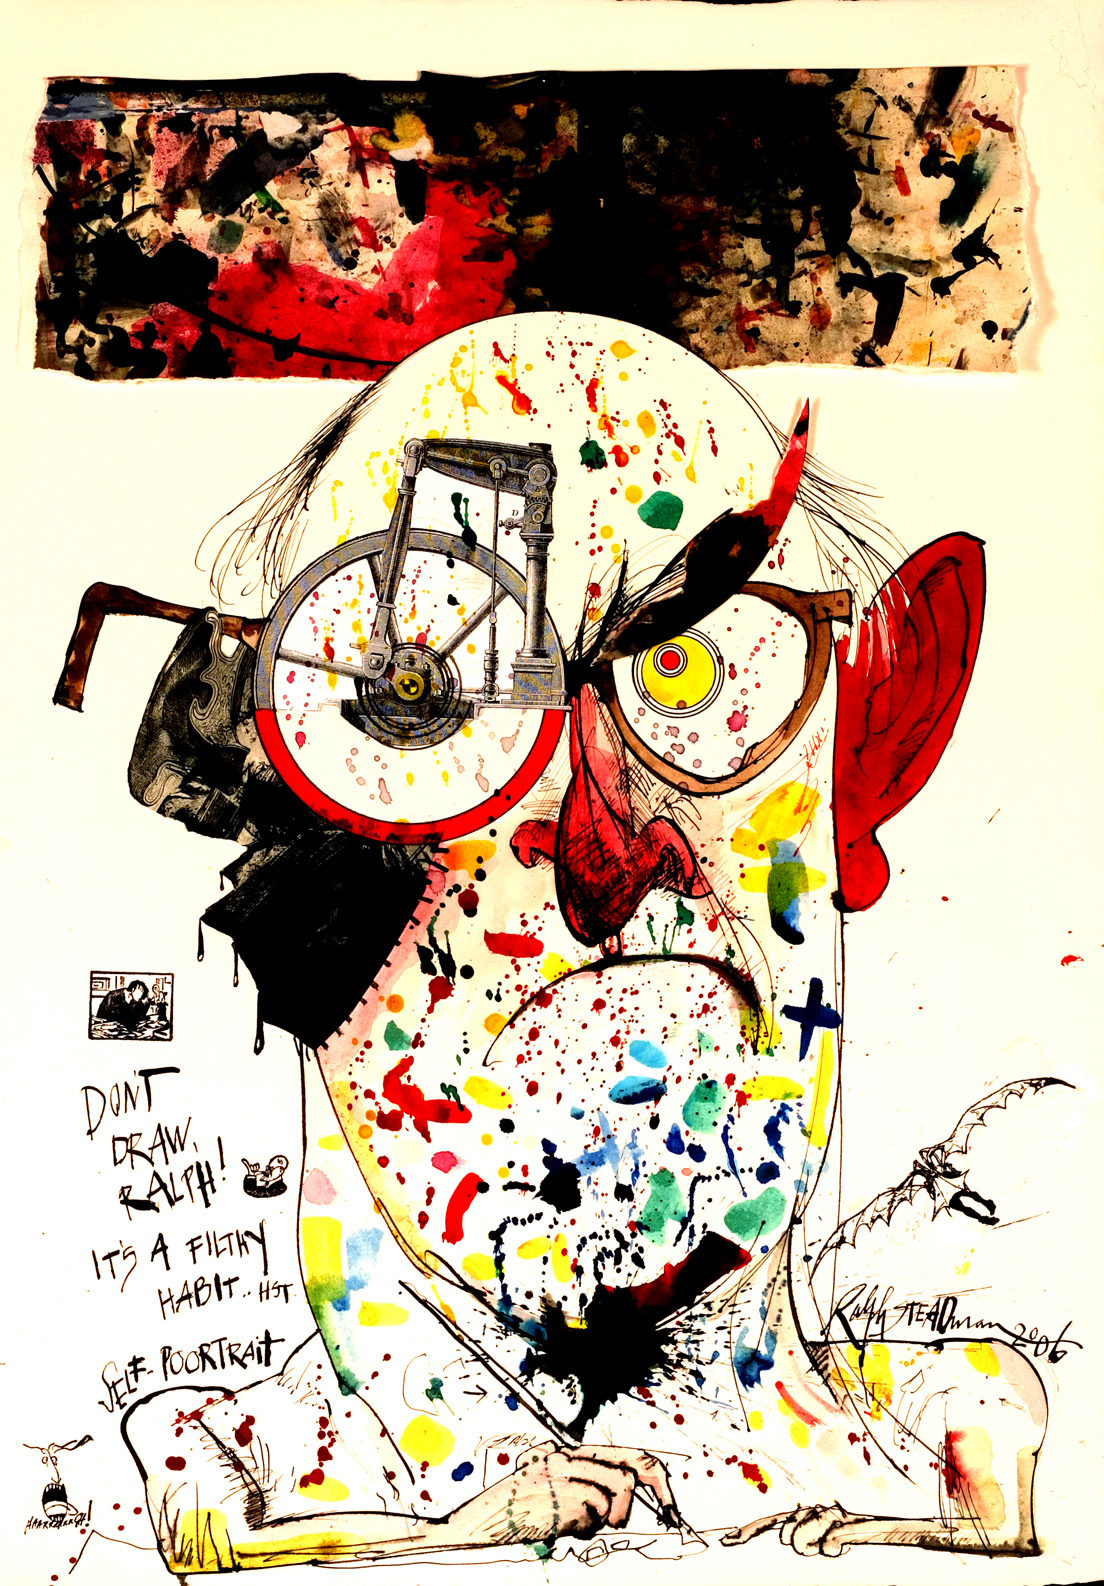 Self-portrait of Ralph Steadman